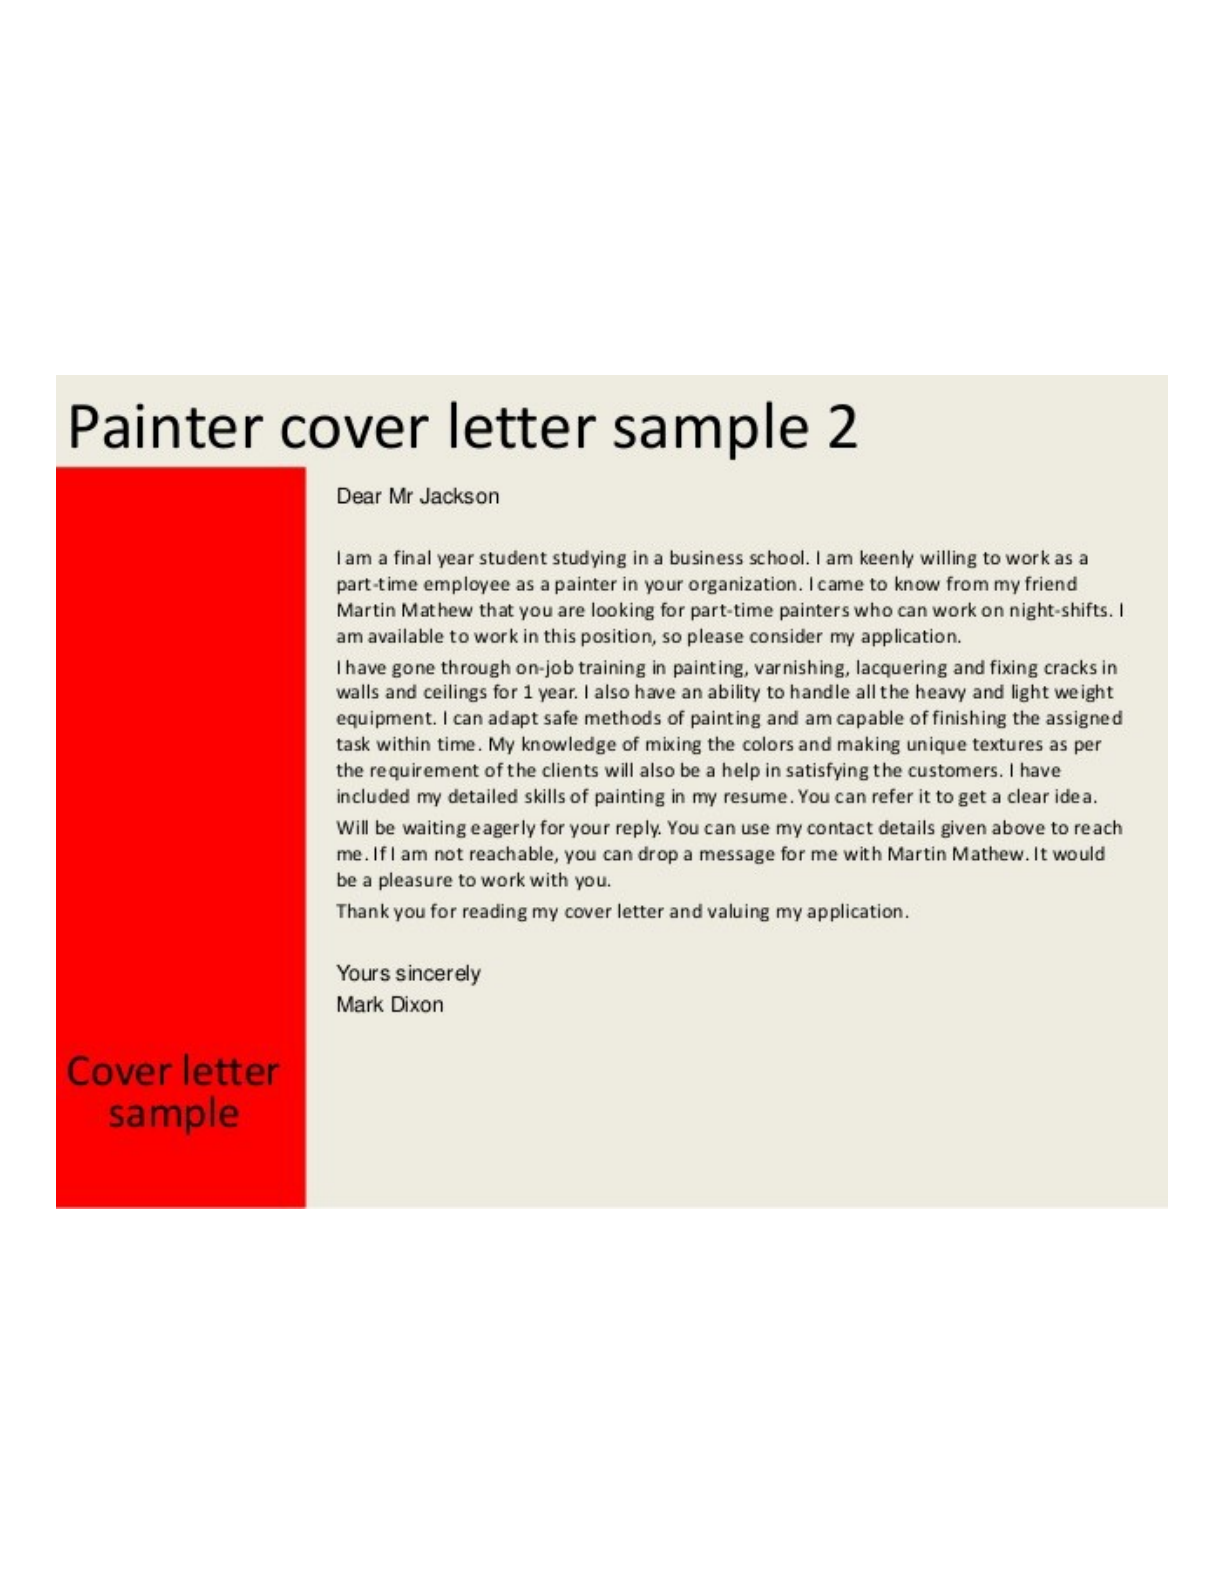 Part-time Painter Cover Letter Samples and Templates